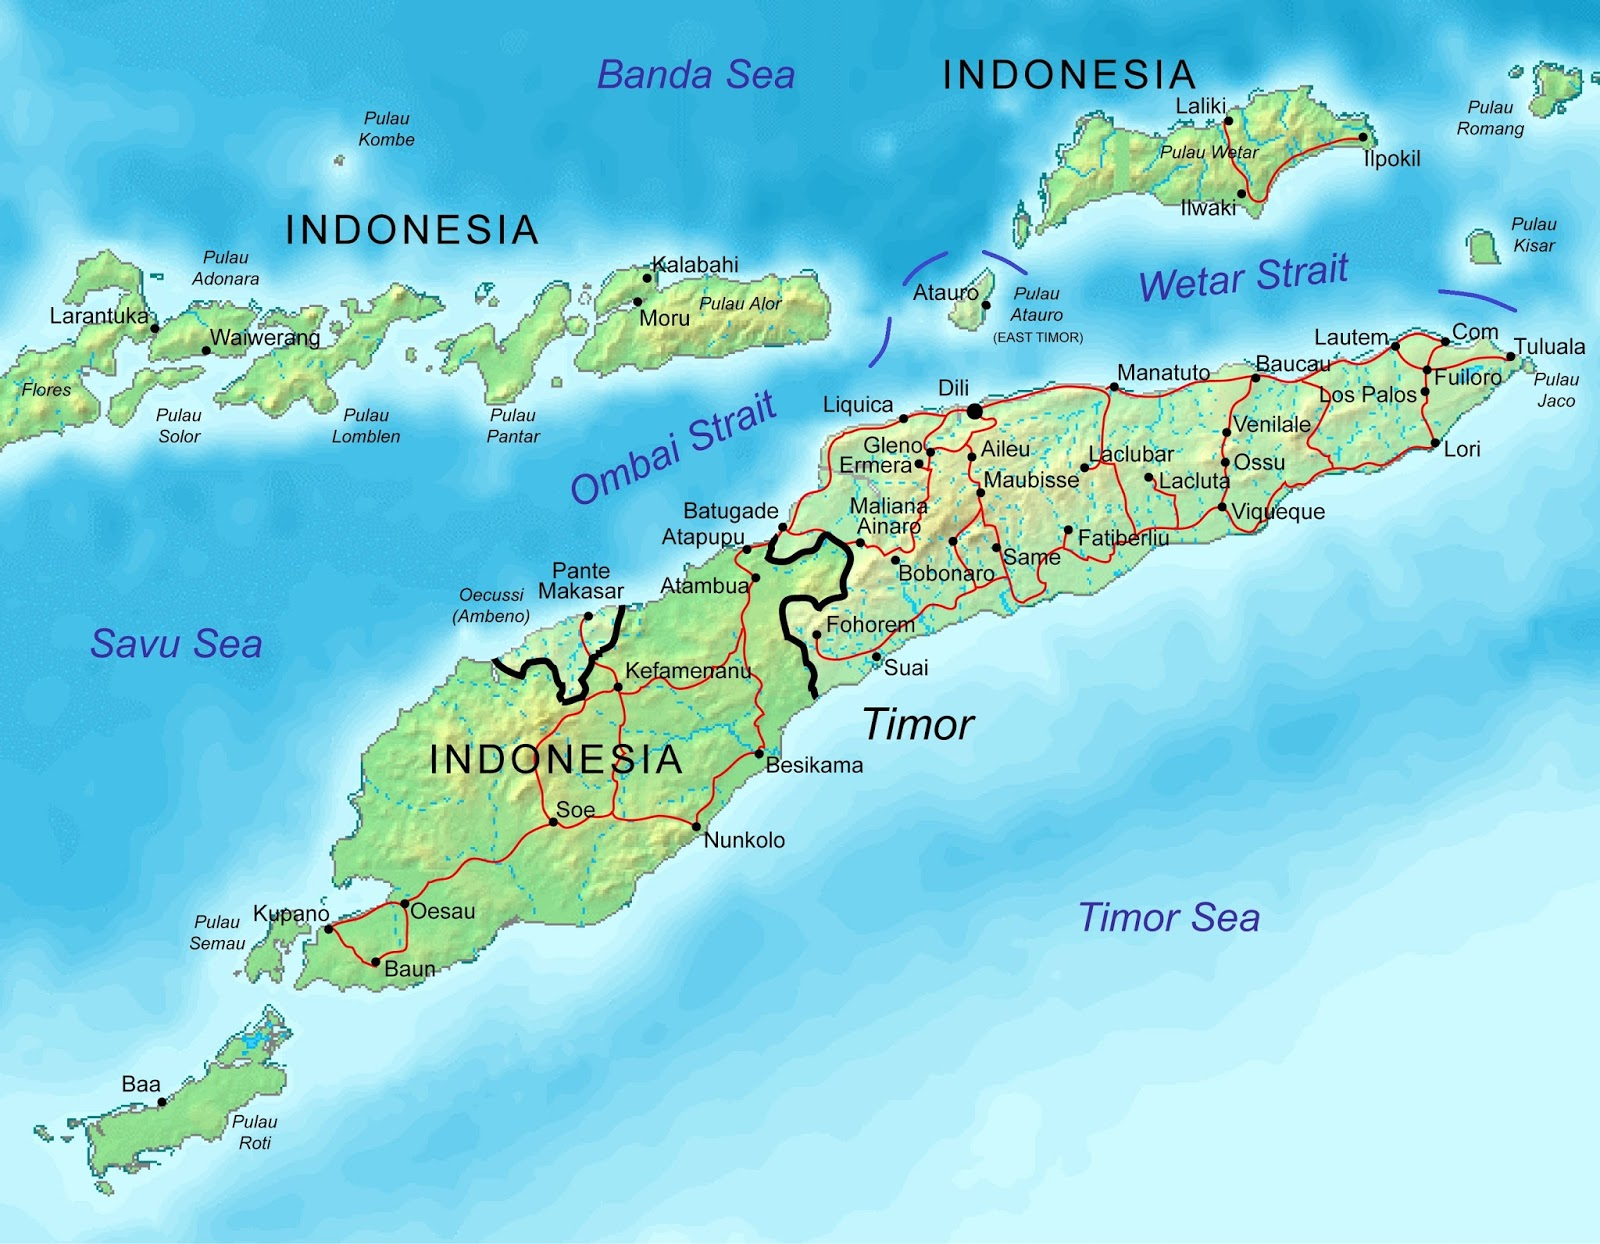 an overview of the colonization of the island of timor by the portuguese In may, following a un withdrawal, east timor's government will have  the  primarily catholic country shares an island with the indonesian province of west  timor  in 1974, the portuguese colony of timor declared itself independent   in september 2003, in apparent contradiction to an earlier review by.